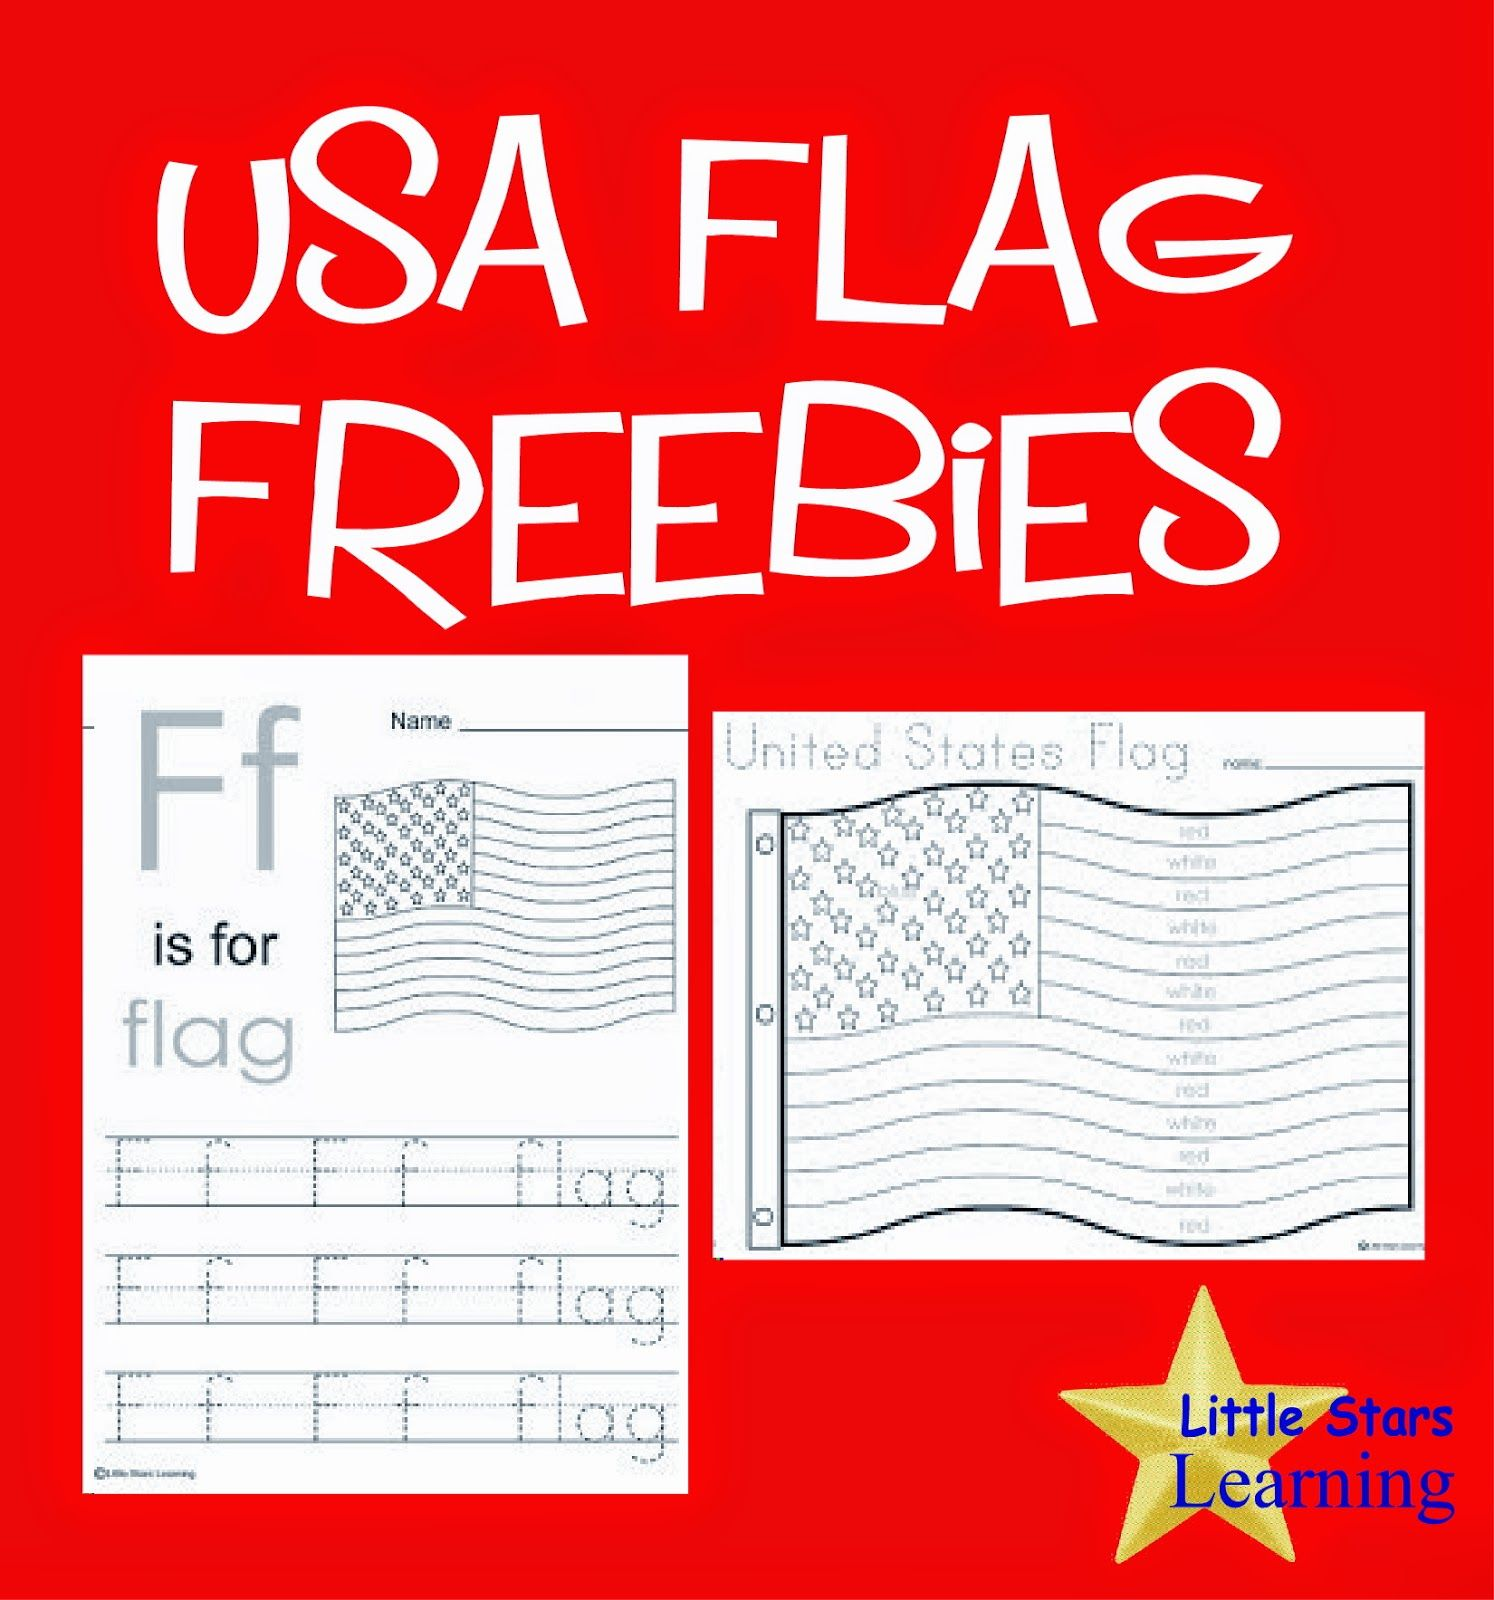 Little Stars Learning Flag Day W Printables Fun Coloring Pages And Worksheets For Preschool